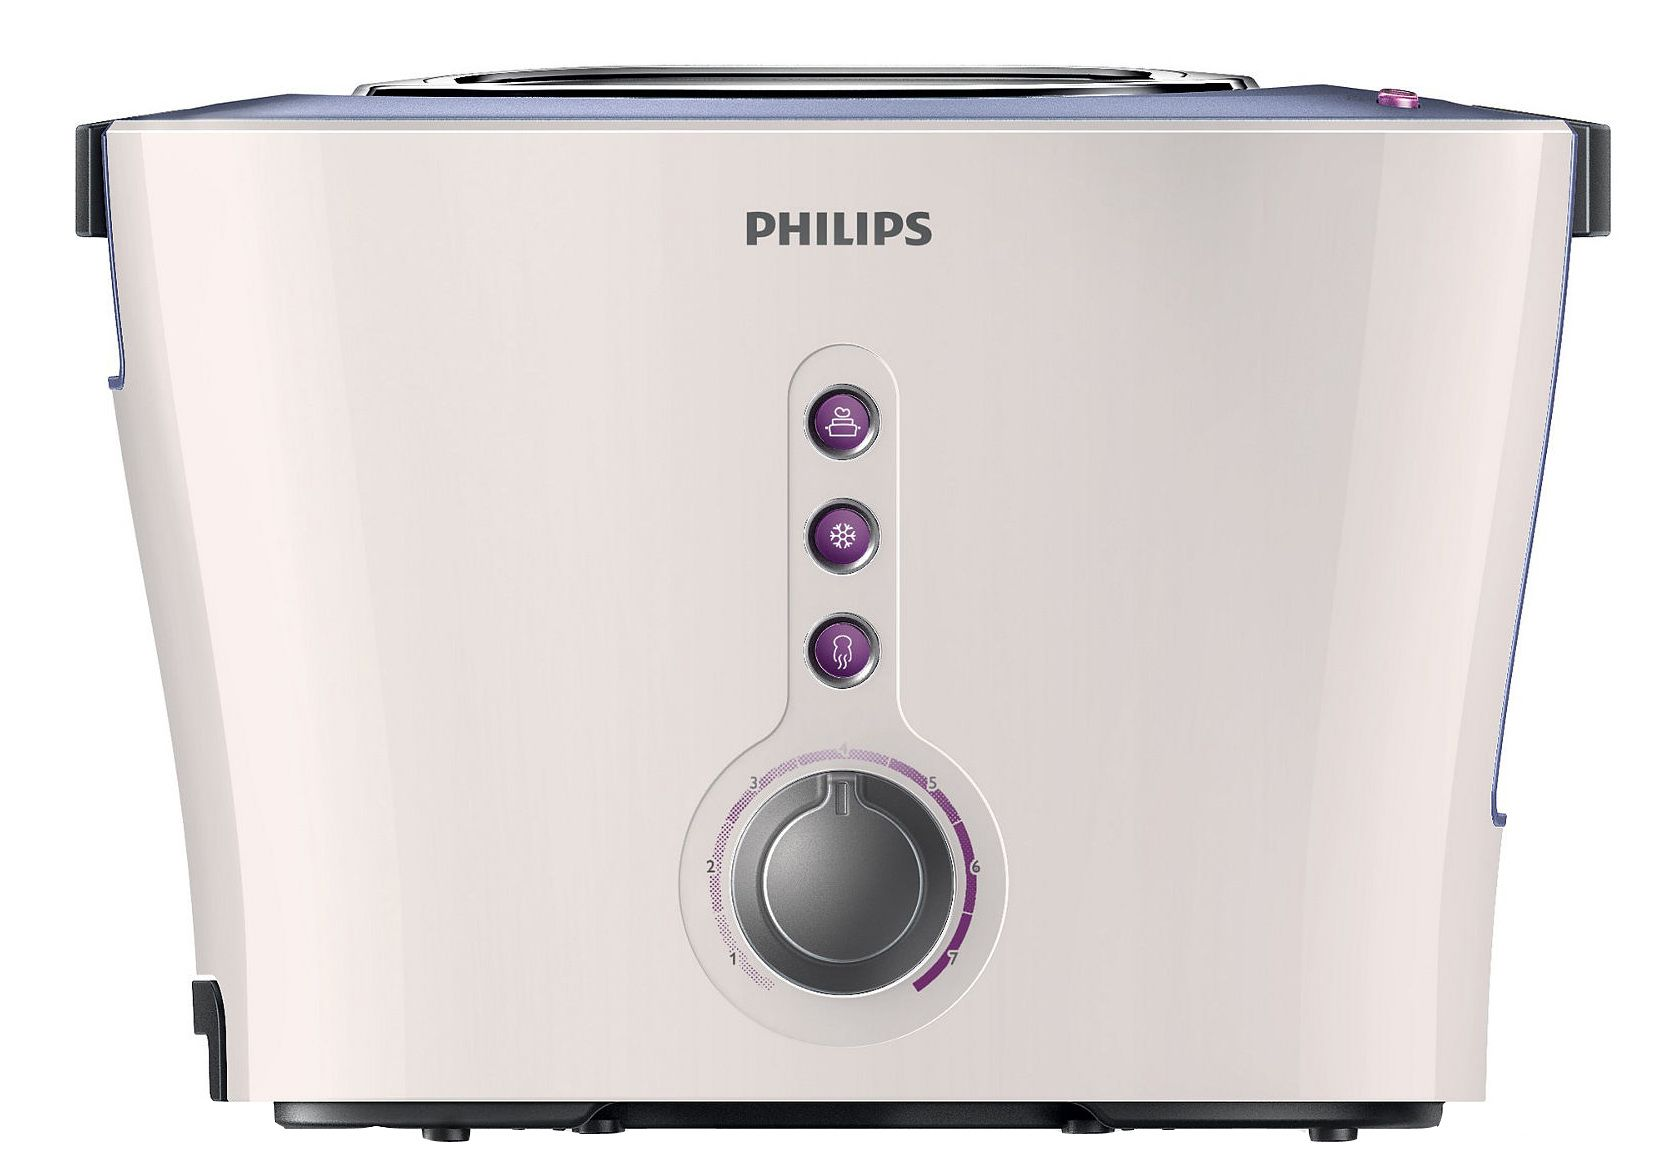 Тостер Philips HD 2630/50 от Ravta